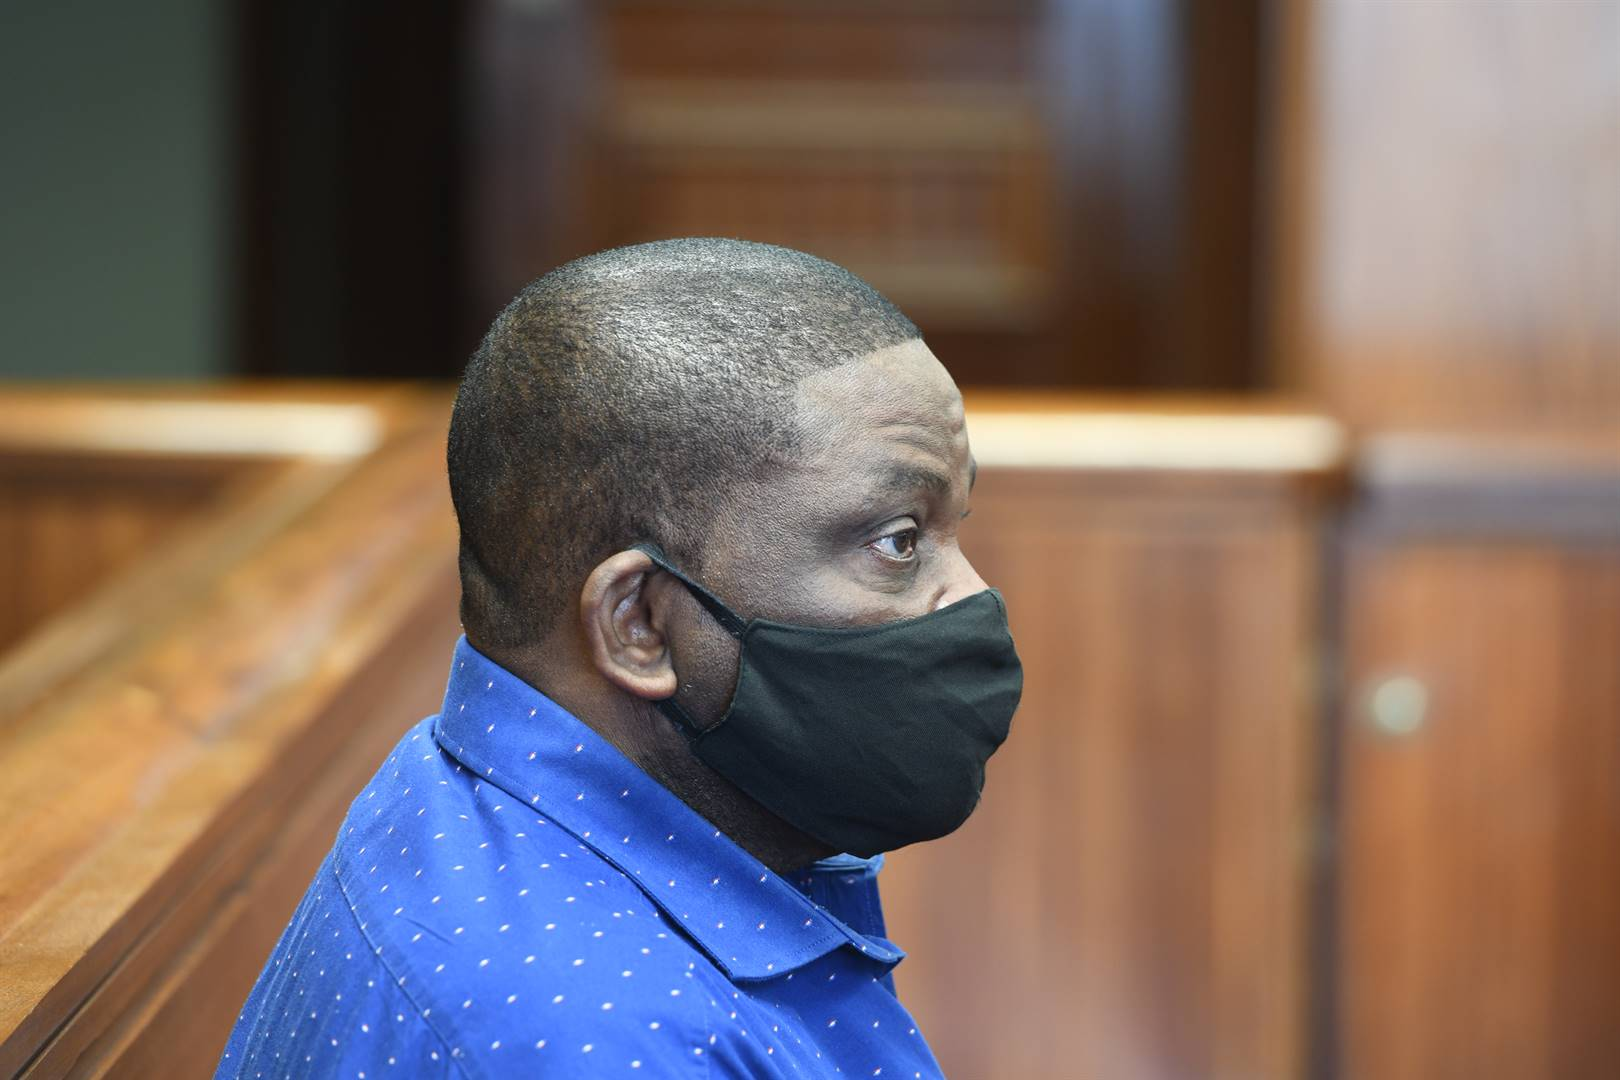 Rape accused Timothy Omotoso to spend 3rd Christmas in jail - News24